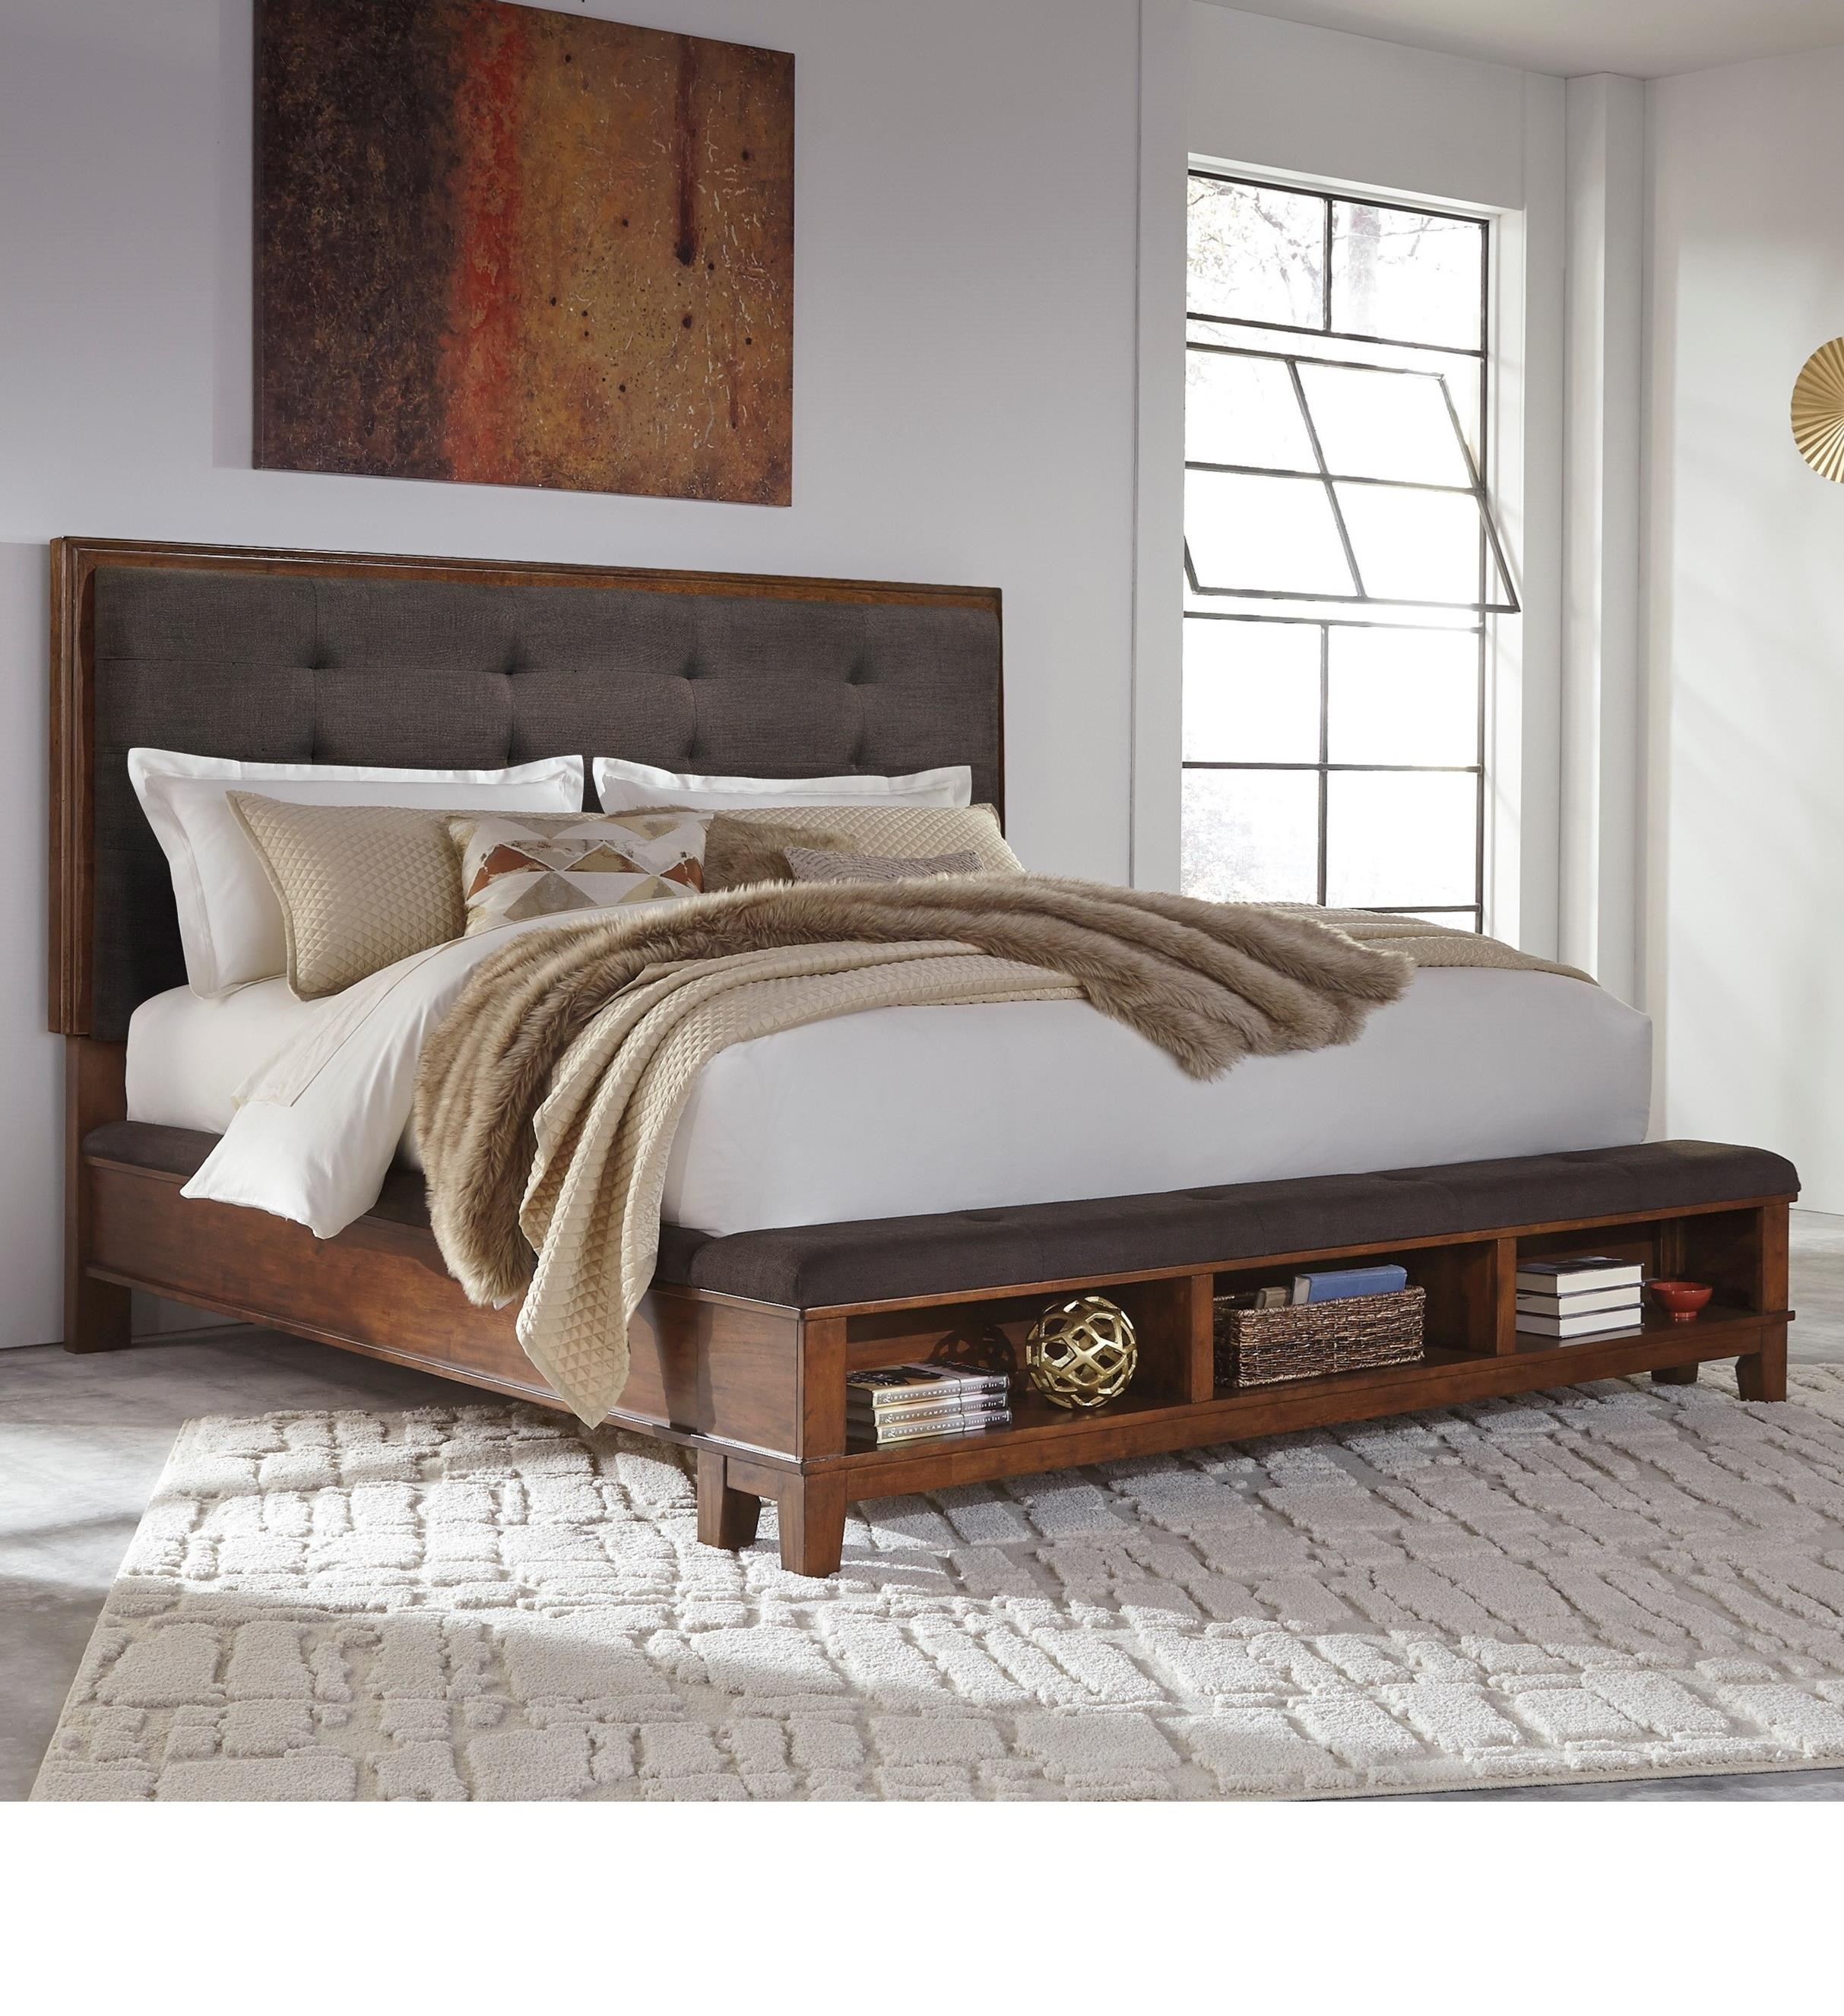 King Upholstered Bed With Bench Storage Footboard By